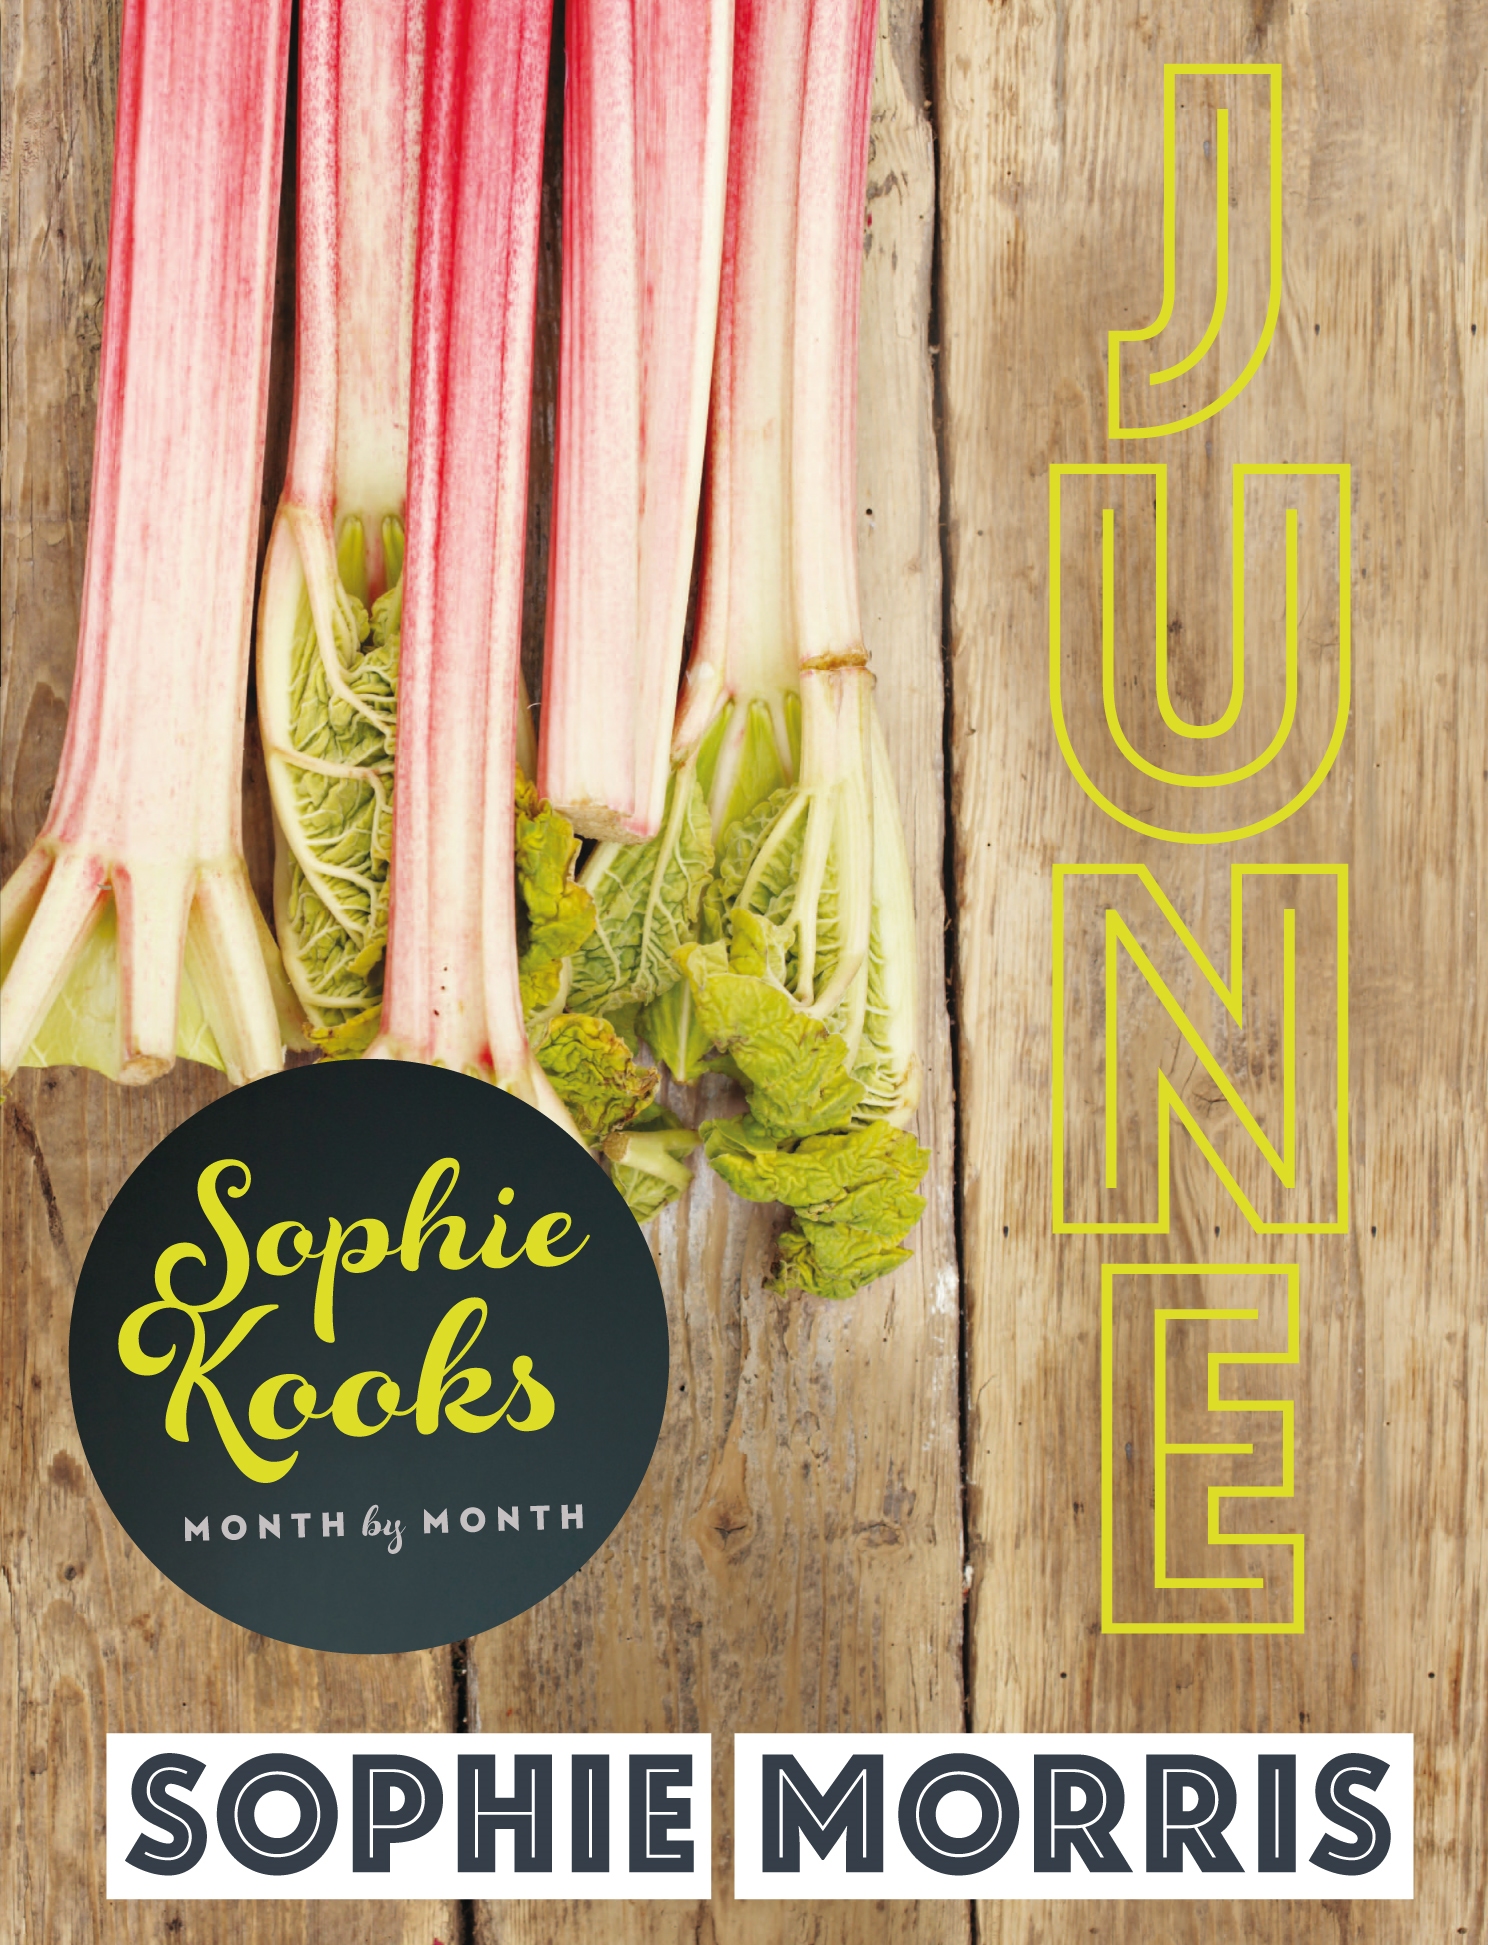 Sophie Kooks Month by Month: Sophie Kooks June: Quick and Easy Feelgood Food by Sophie Morris of Kooky Dough